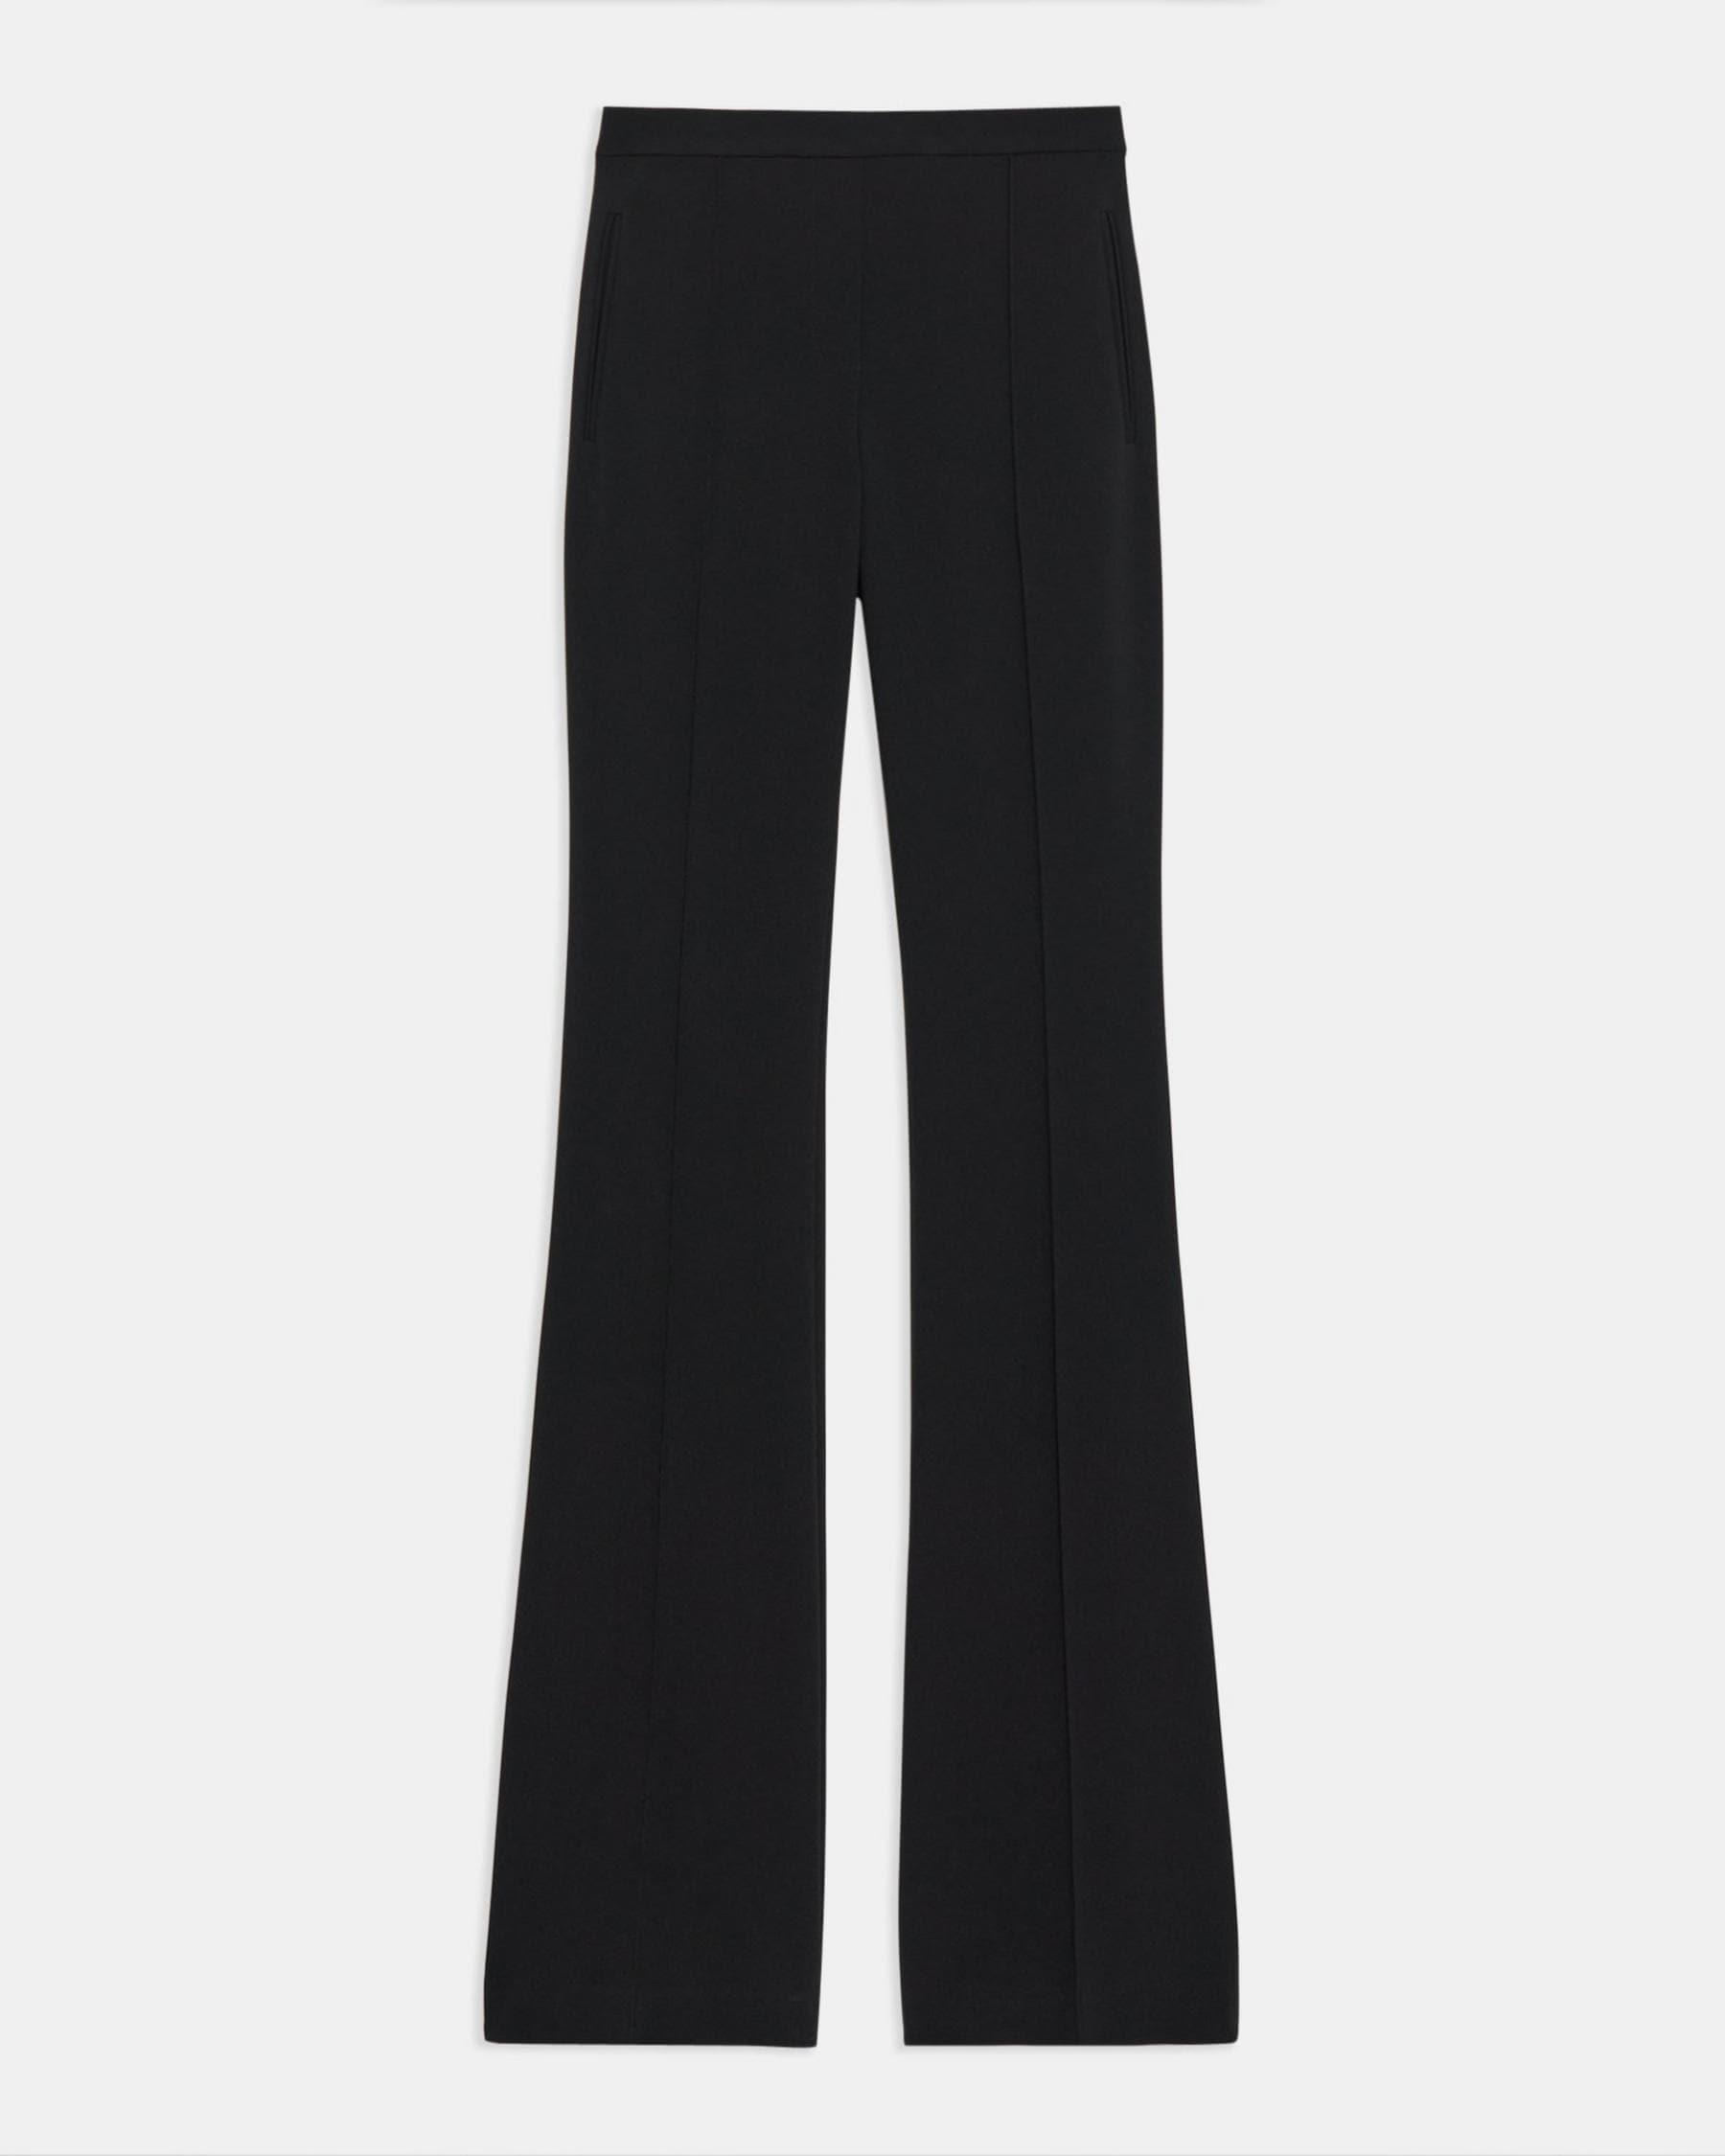 Demitria Pull-On Pant in Crepe 5